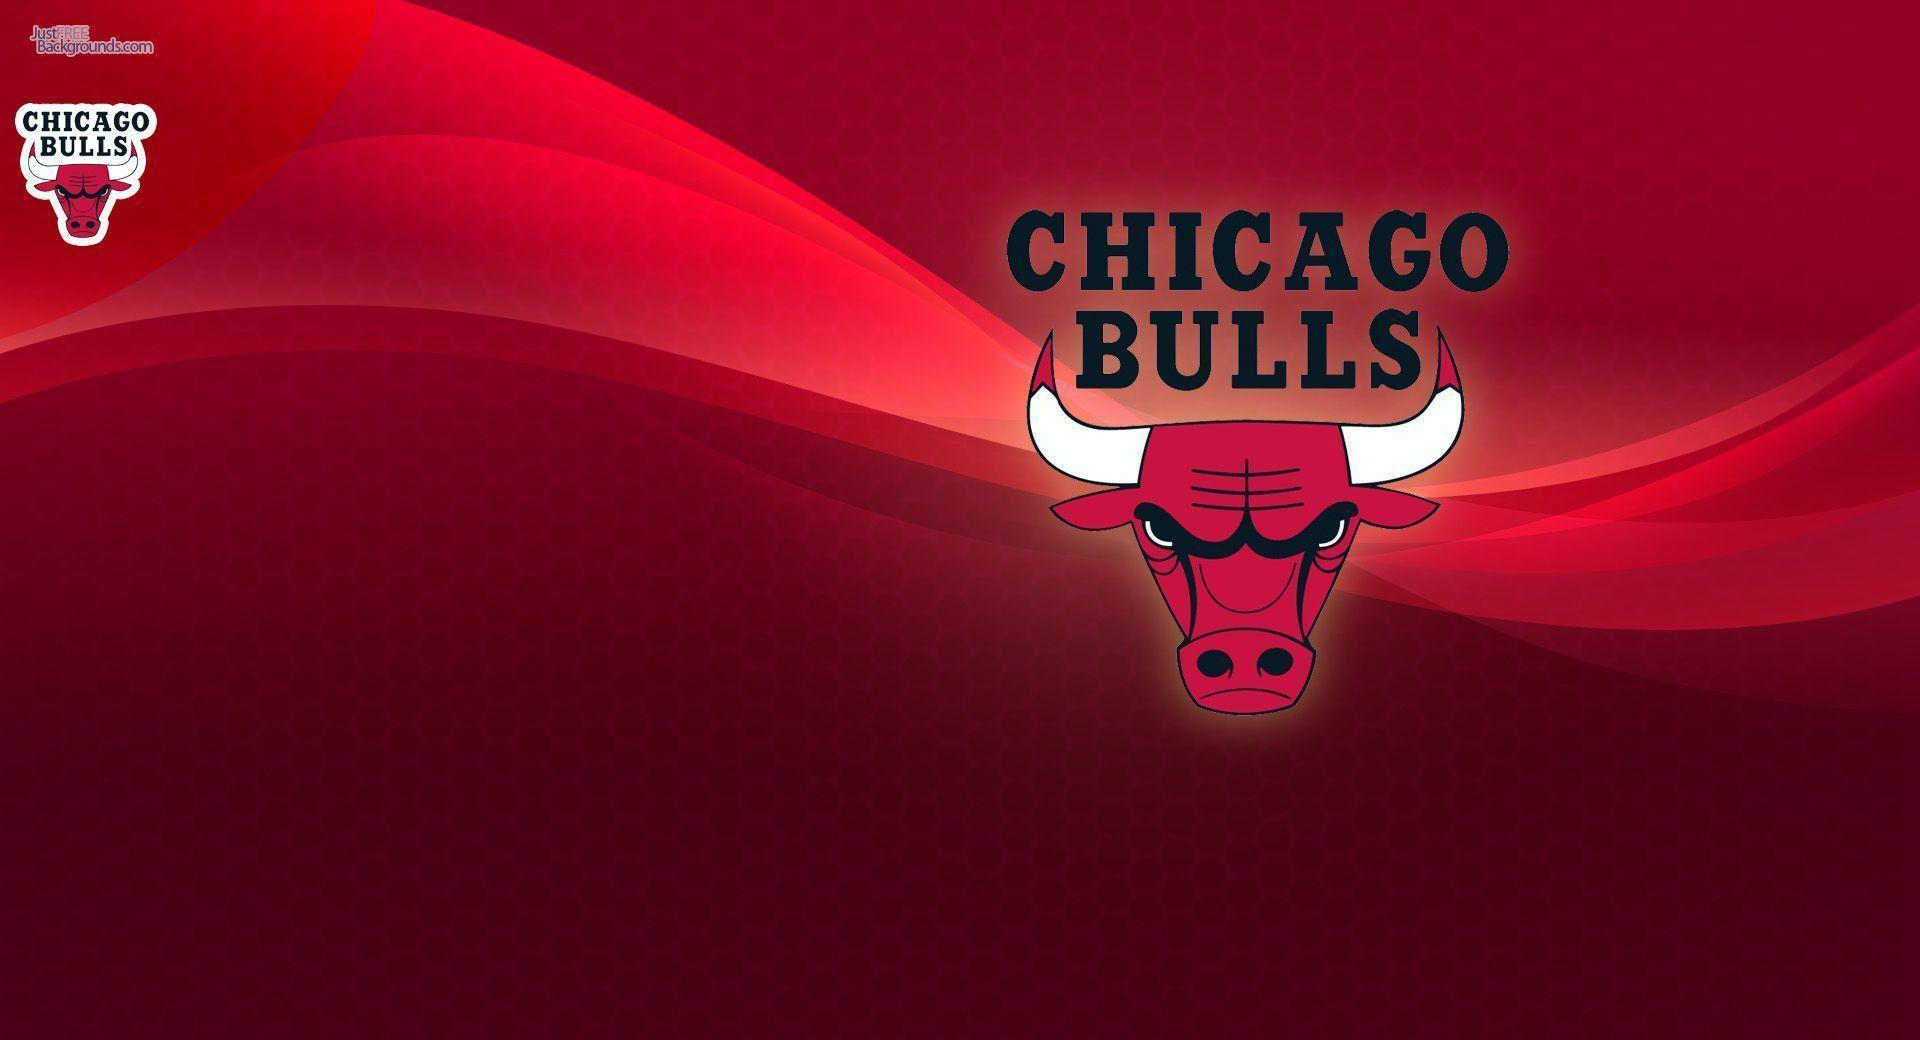 Chicago bull wallpapers wallpaper cave amazing chicago bulls wallpaper hd basketball wallpapers hd voltagebd Gallery